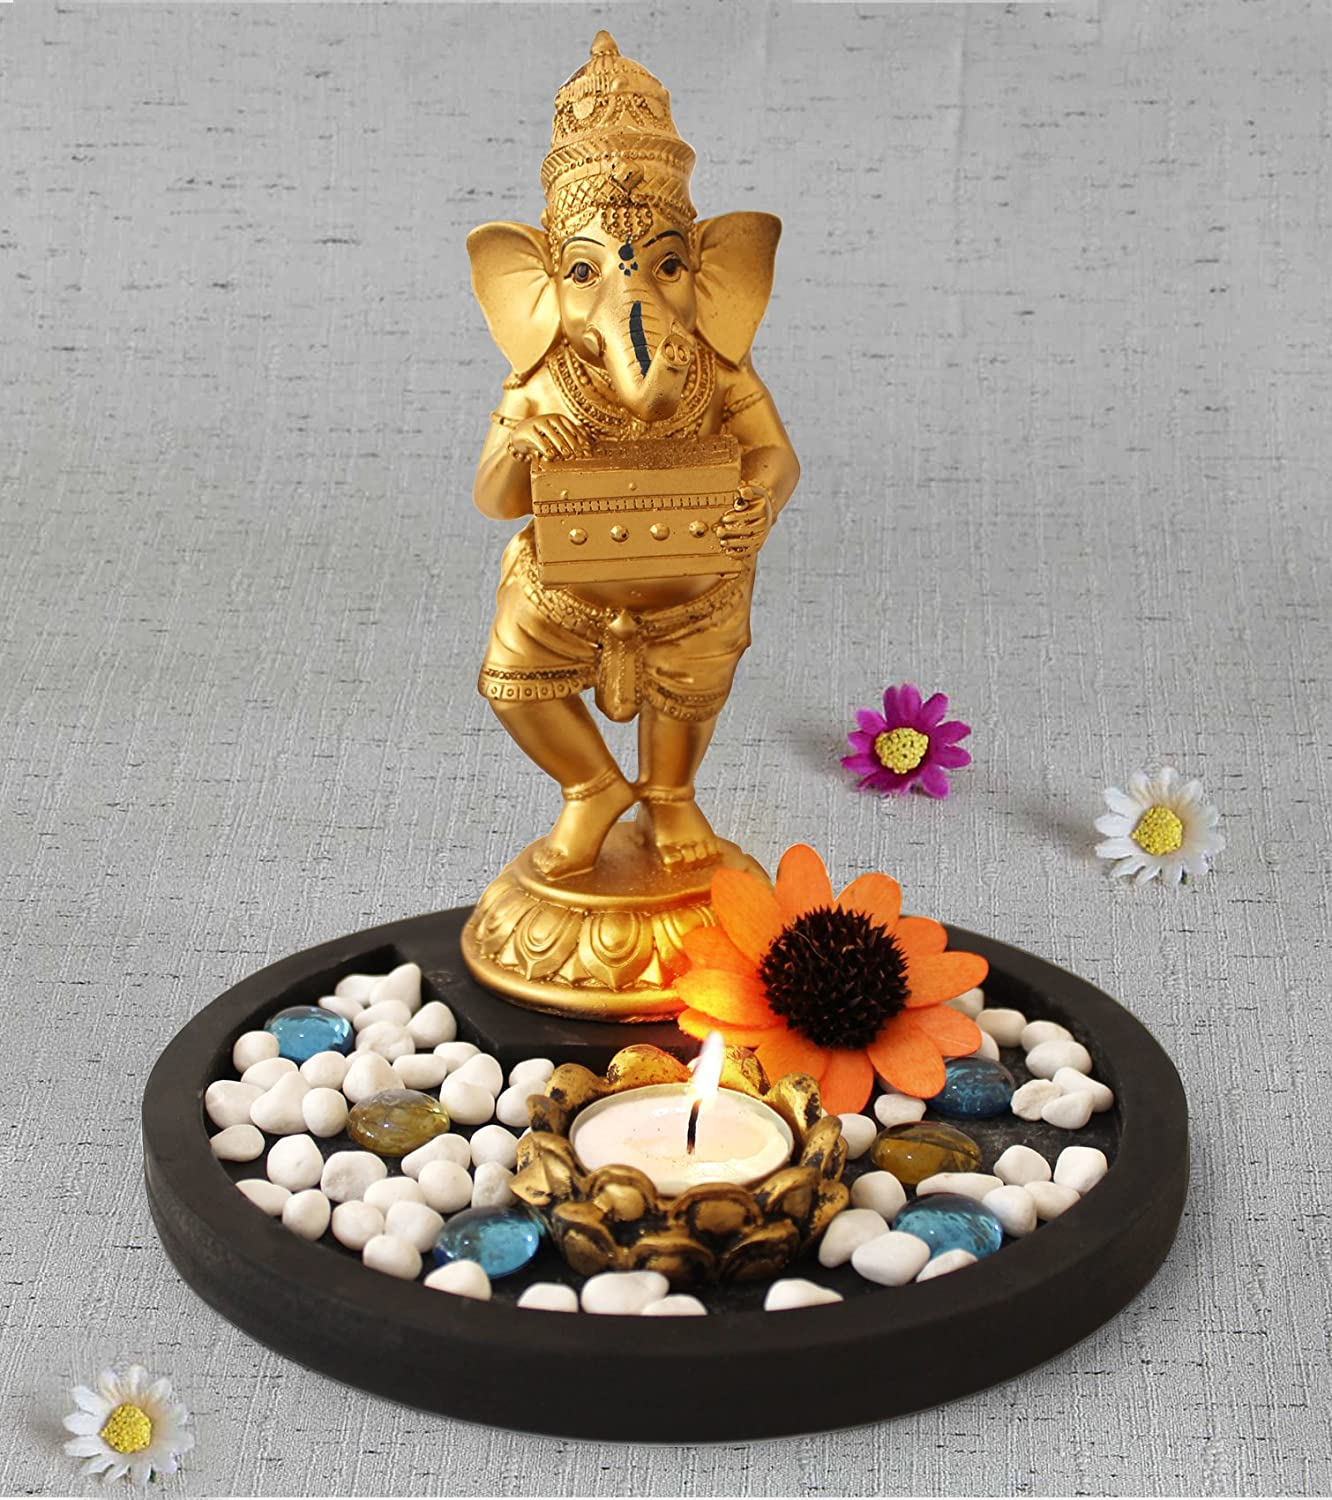 Indian God Ganesha Playing Harmonium Figurine Idol Murti with Wooden Tray, Pebbles, Artificial Flower, Tealight Candle Holder for Home decoration and House Warming Gifts